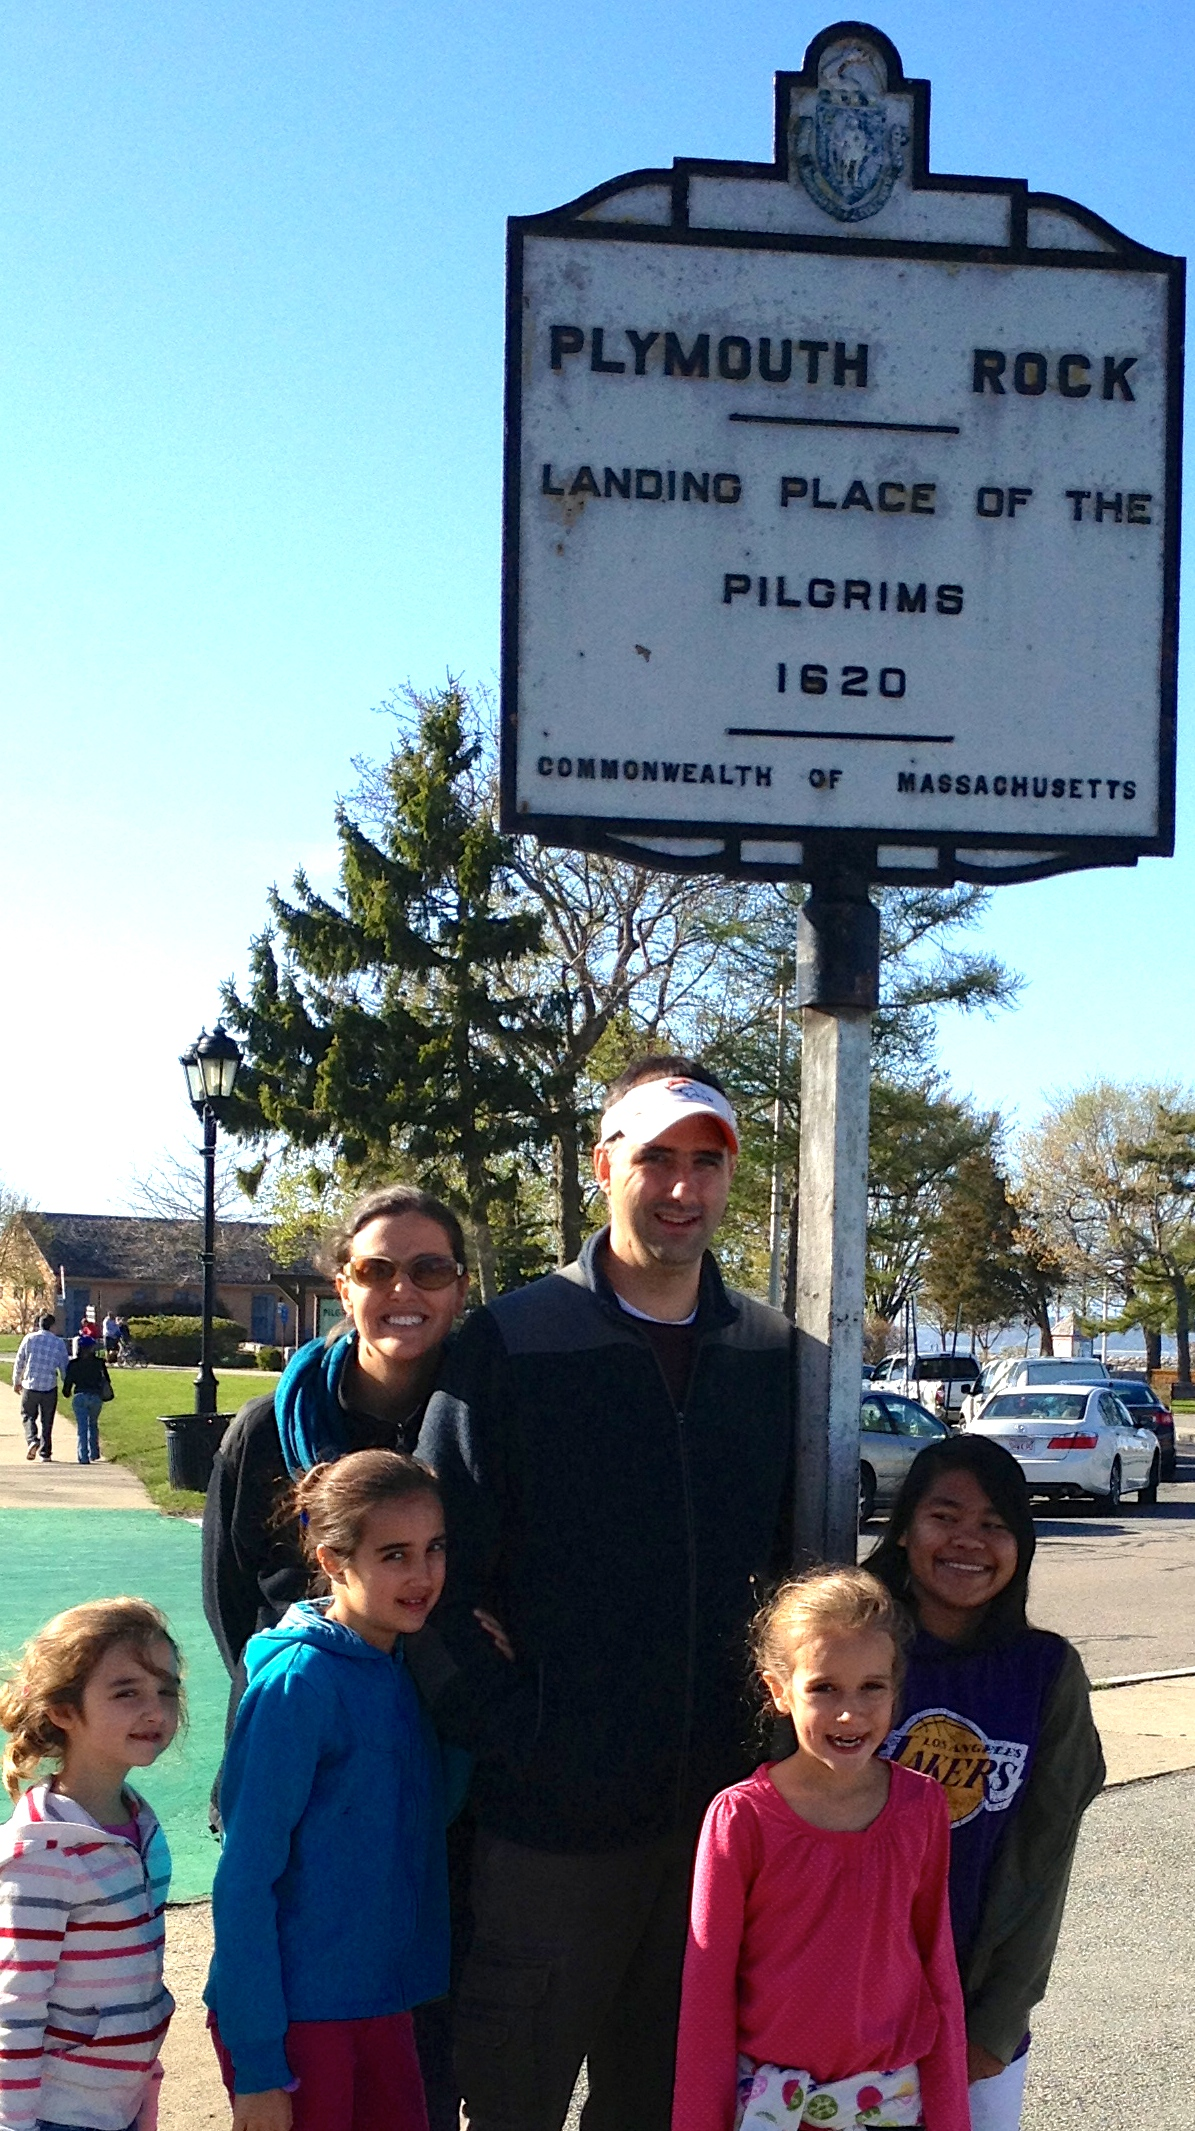 The fam standing in front of the sign marking Plymouth Rock.